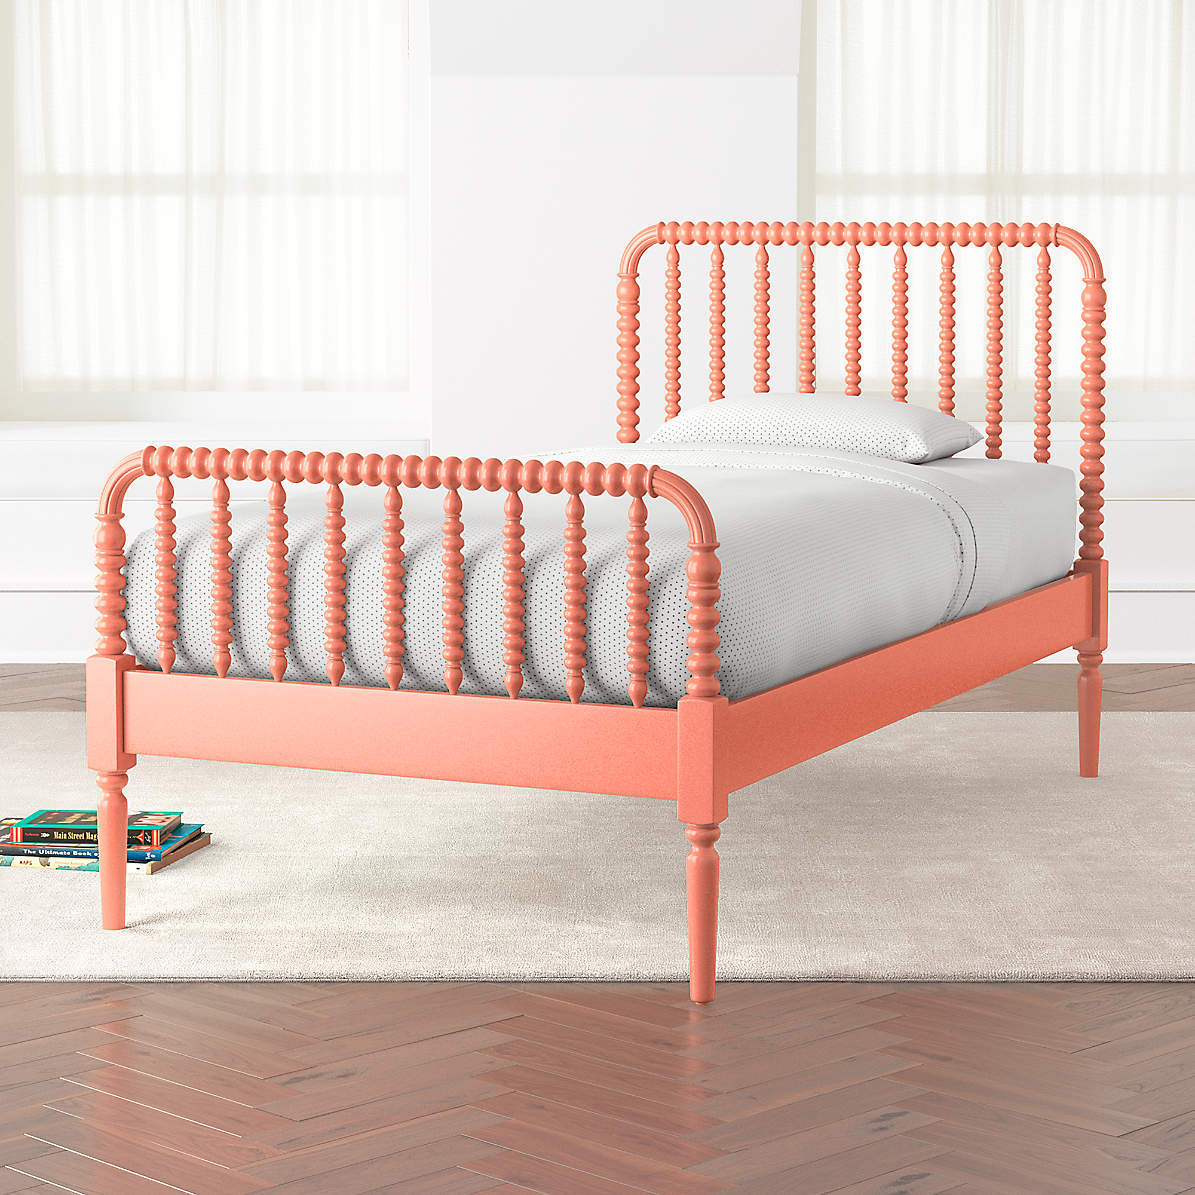 Coral Jenny Lind Kids Bed Crate And Barrel